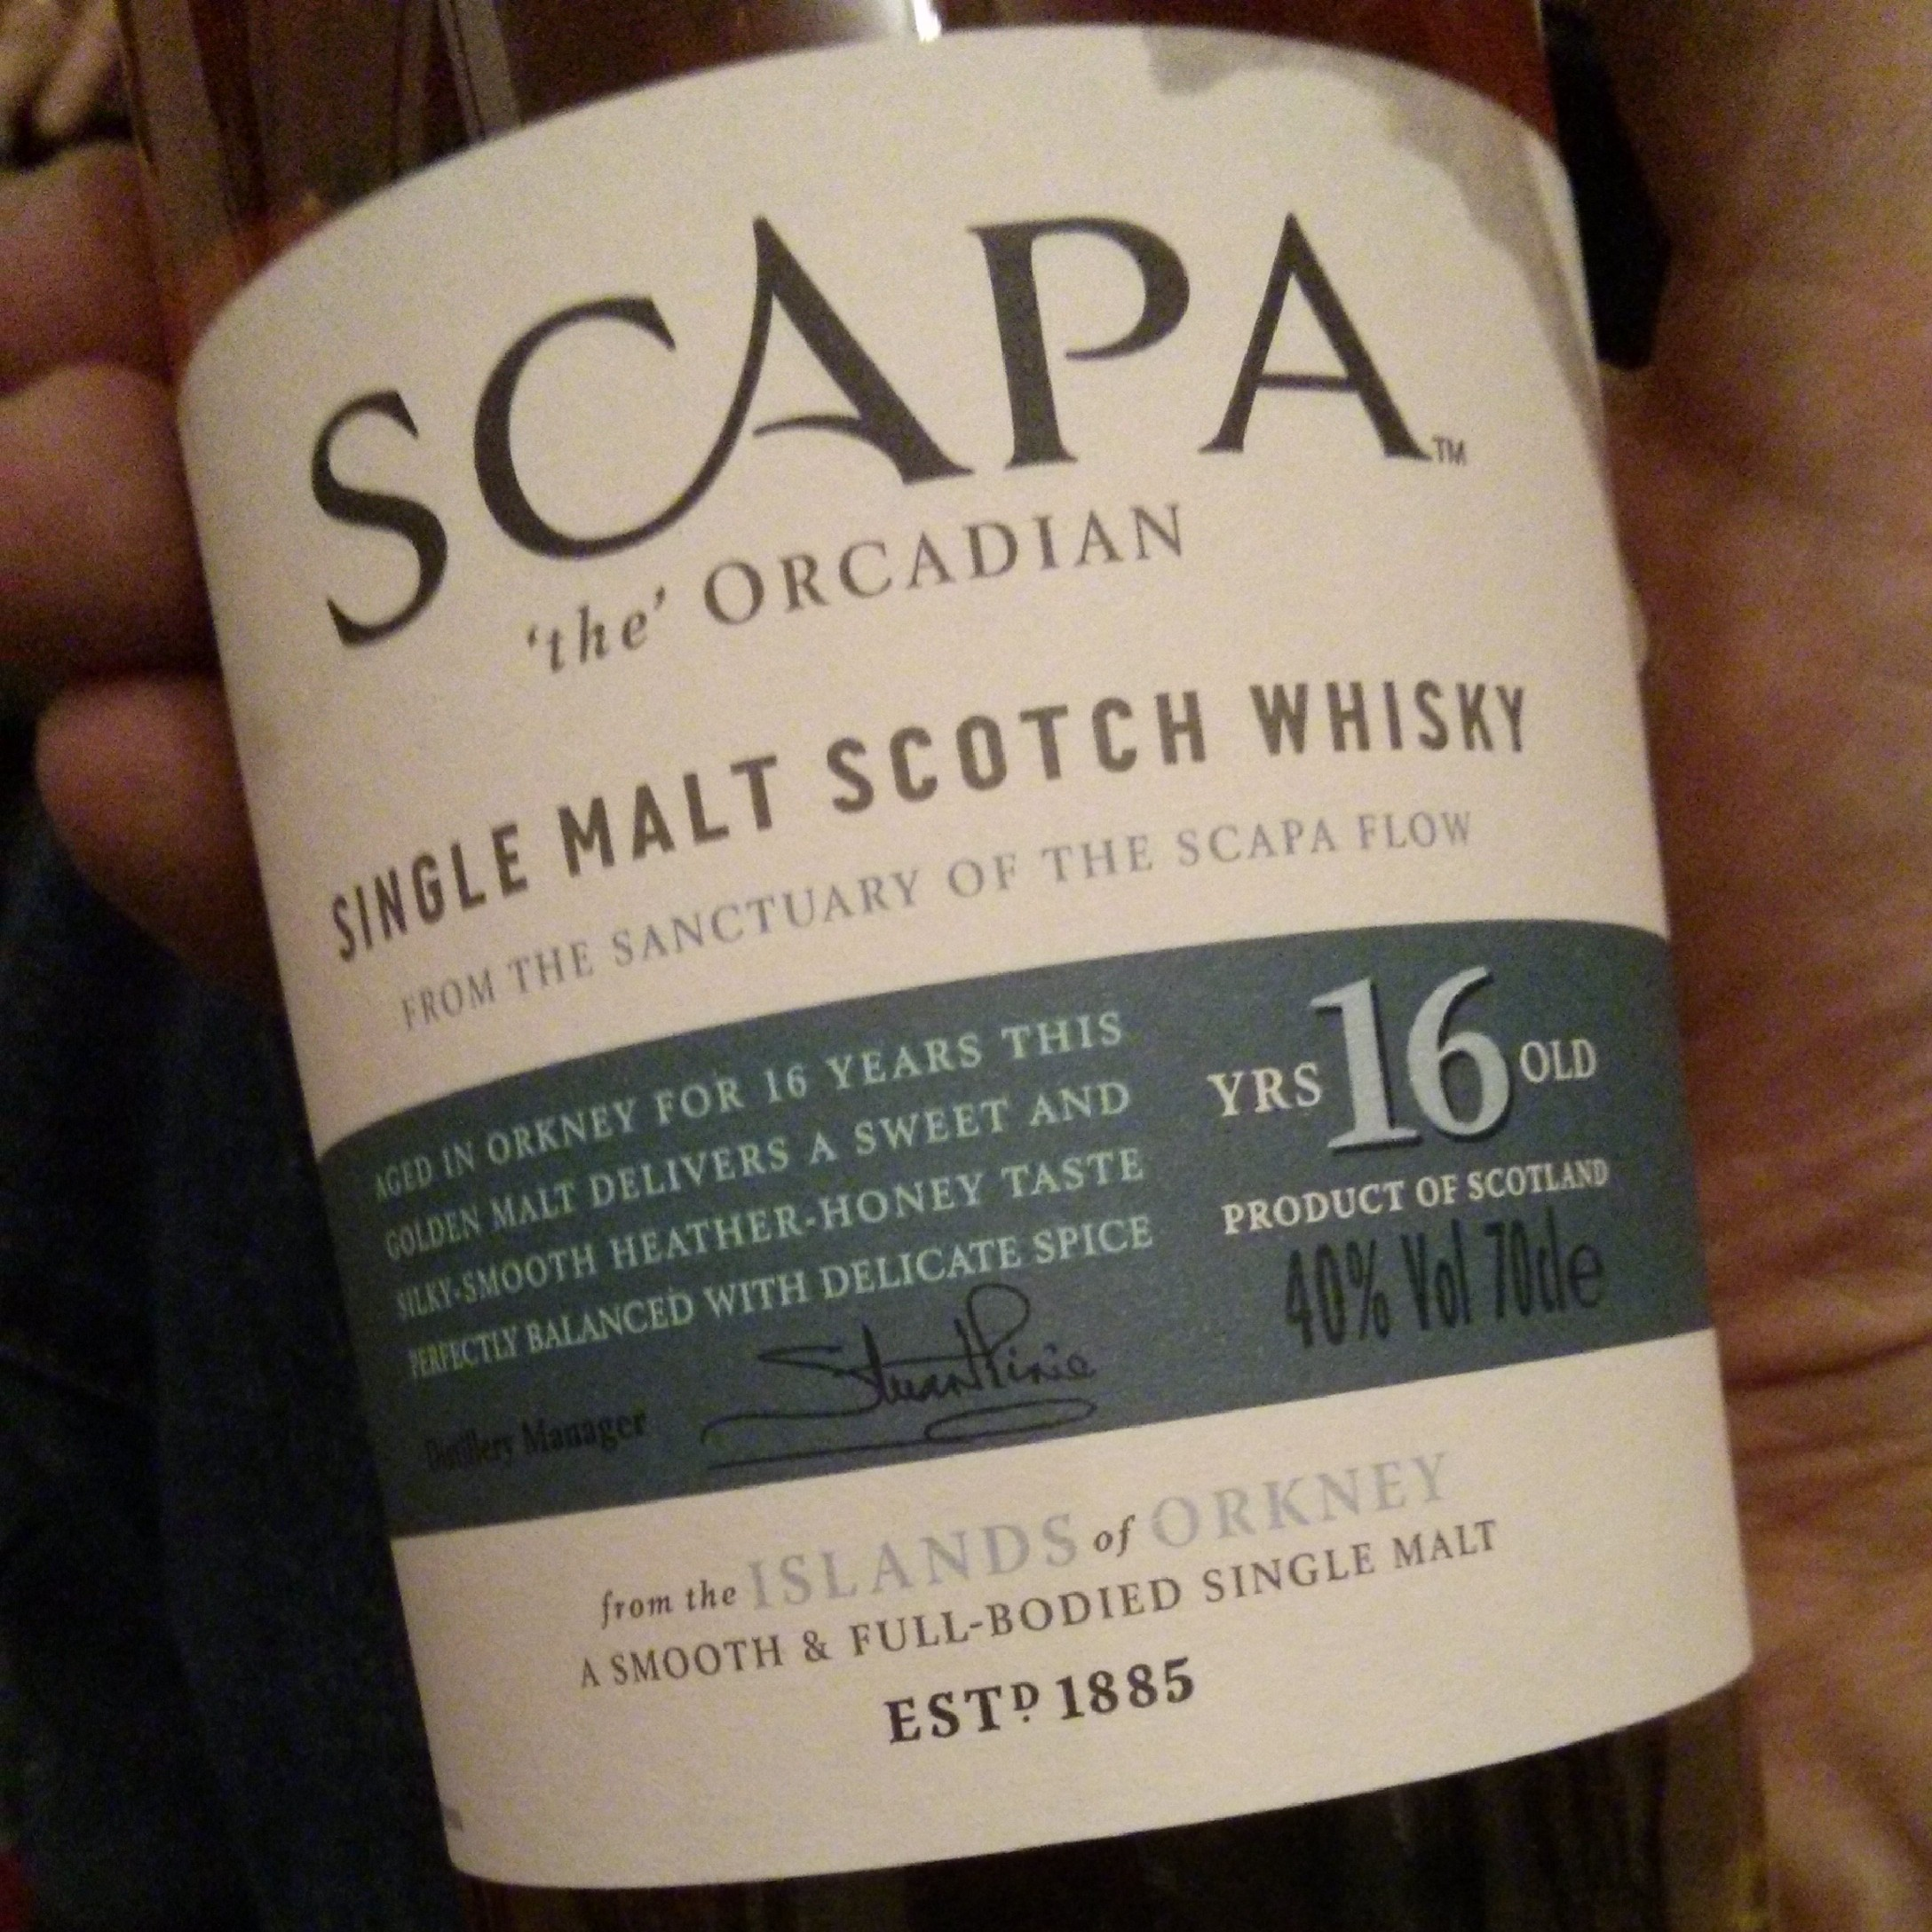 Scapa 'the' Orcadian, Islands / Orkney, 16 Jahre